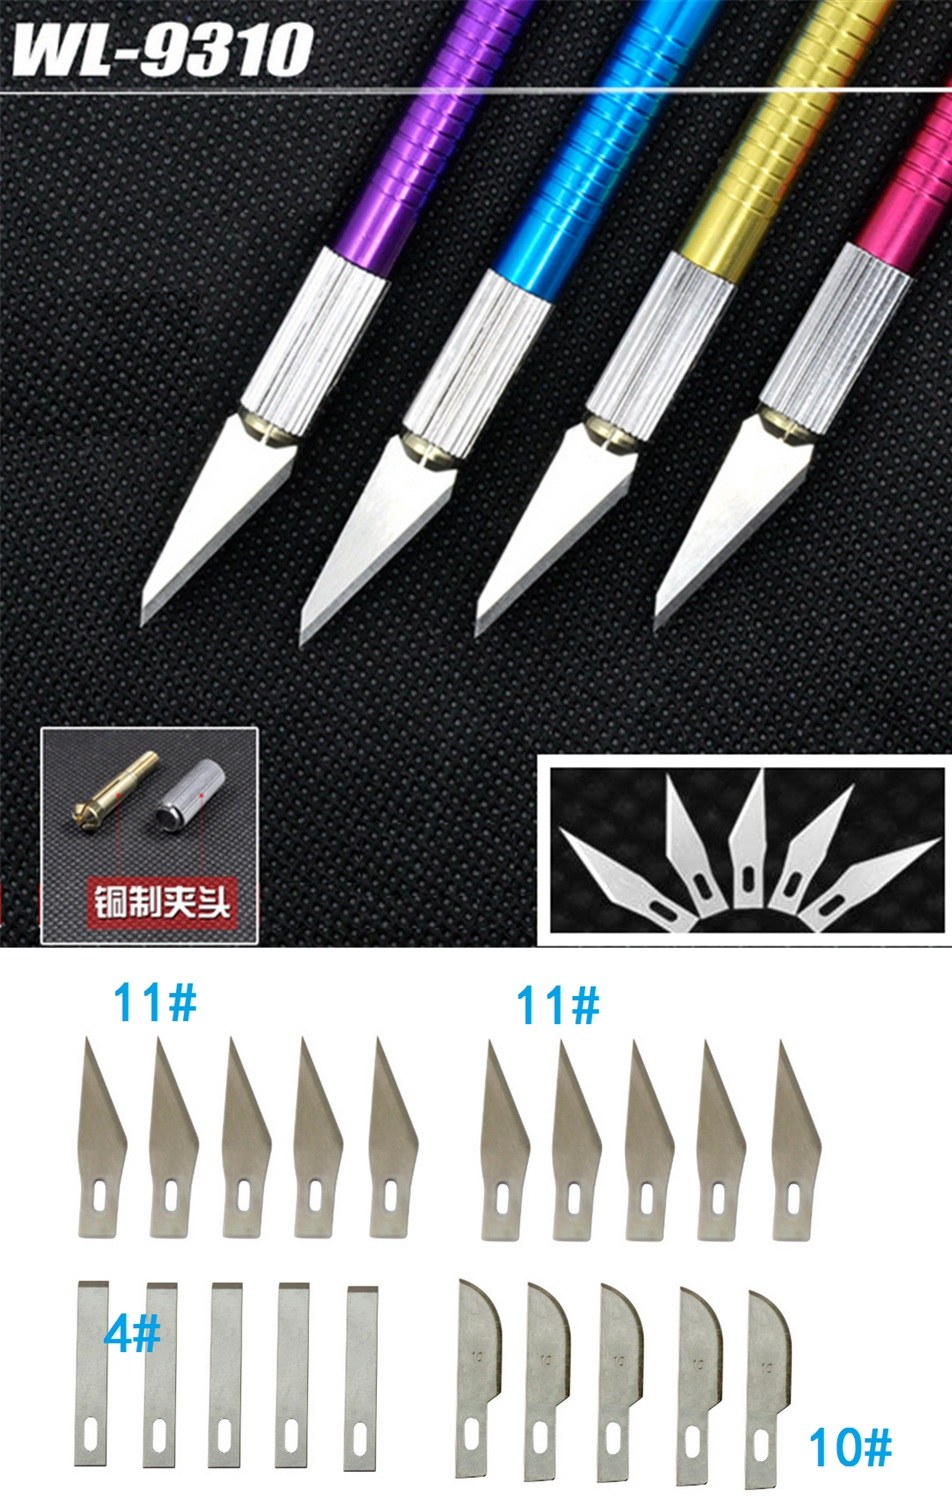 26 Blades Art Knifes Wood Carving Tools Razor Hobby Leather Fruit Food Craft Sculpture Engraving Scalpel DIY Cutting PCB Repair newacalox 20pcs stainless steel blade for mobile phone films tools cutter crafts hobby knife diy scalpel wood carving pcb repair